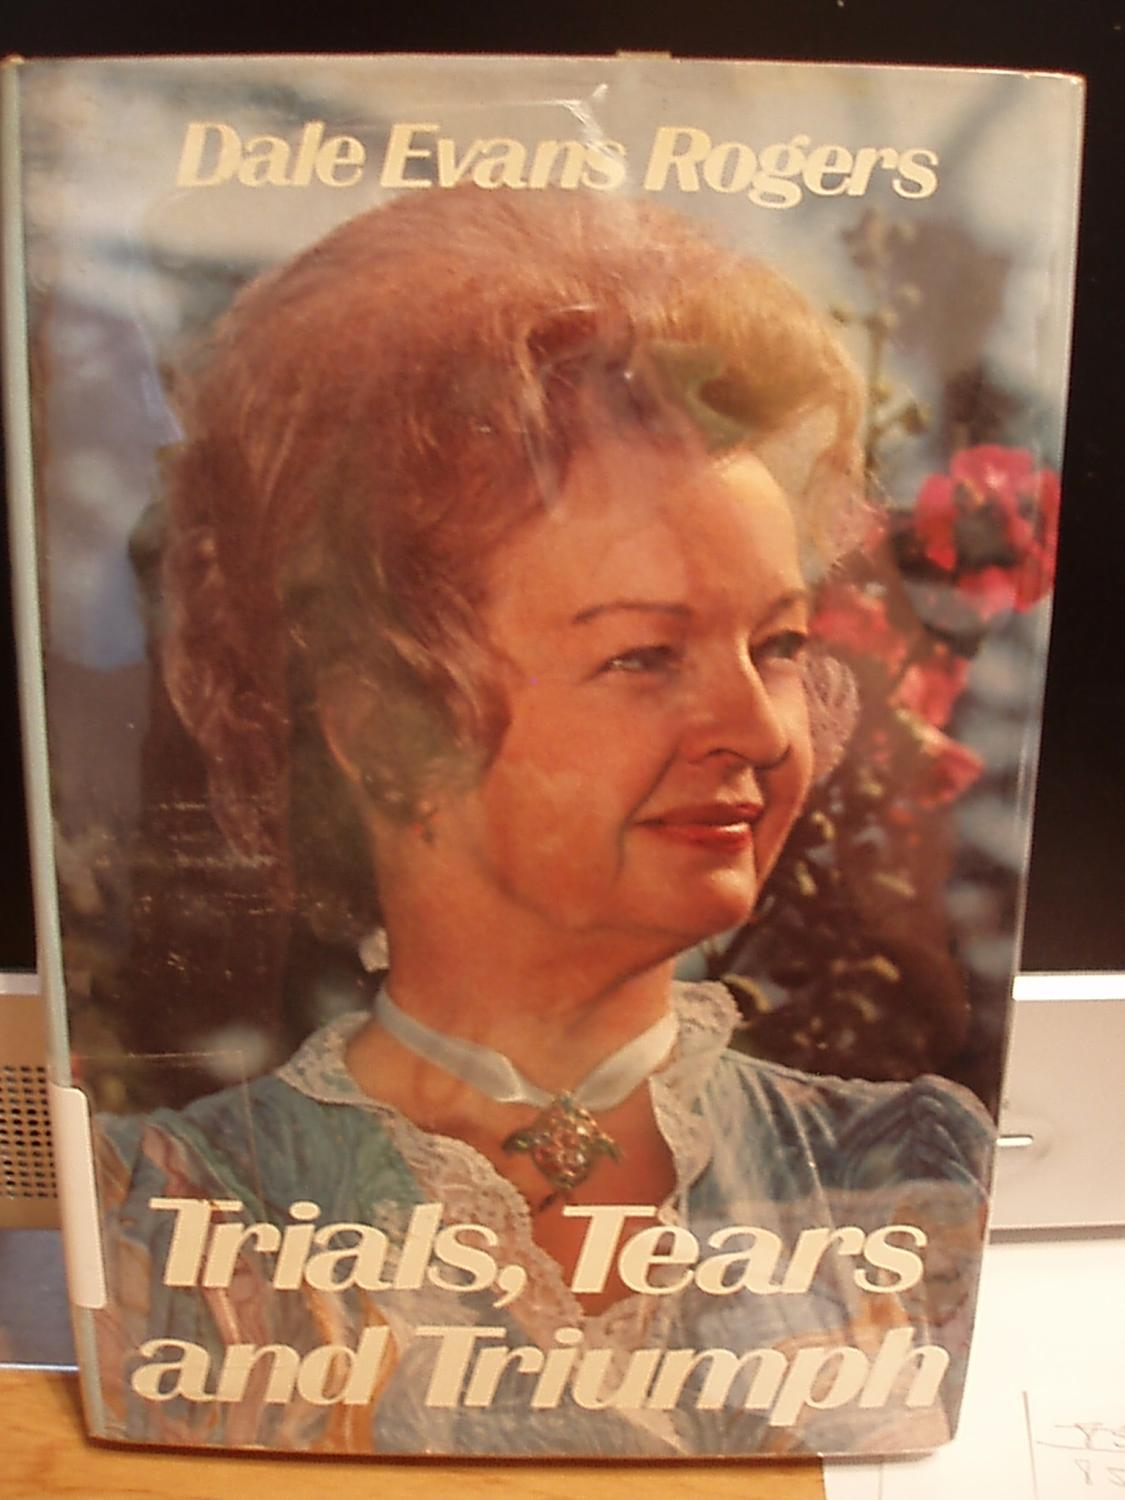 Trials, Tears and Triumph - Rogers, Dale Evans